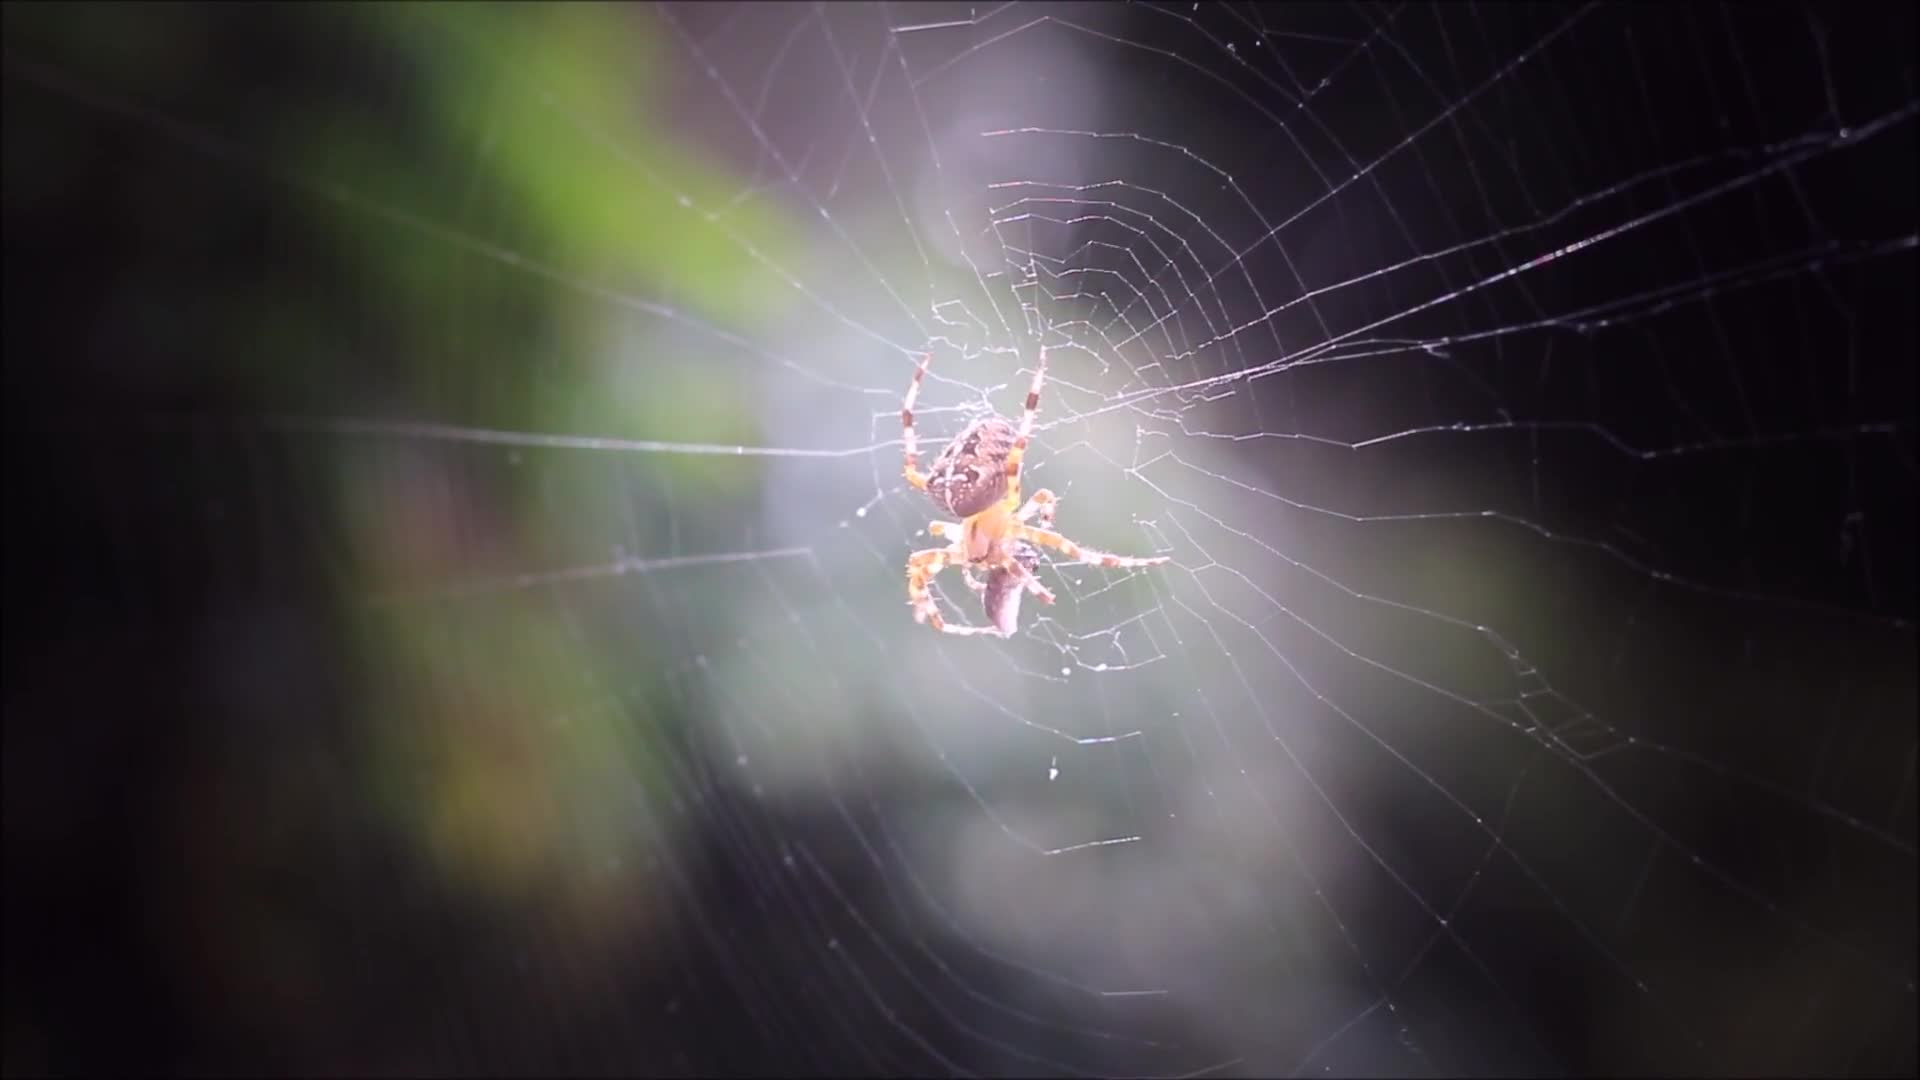 Close up video of a spider